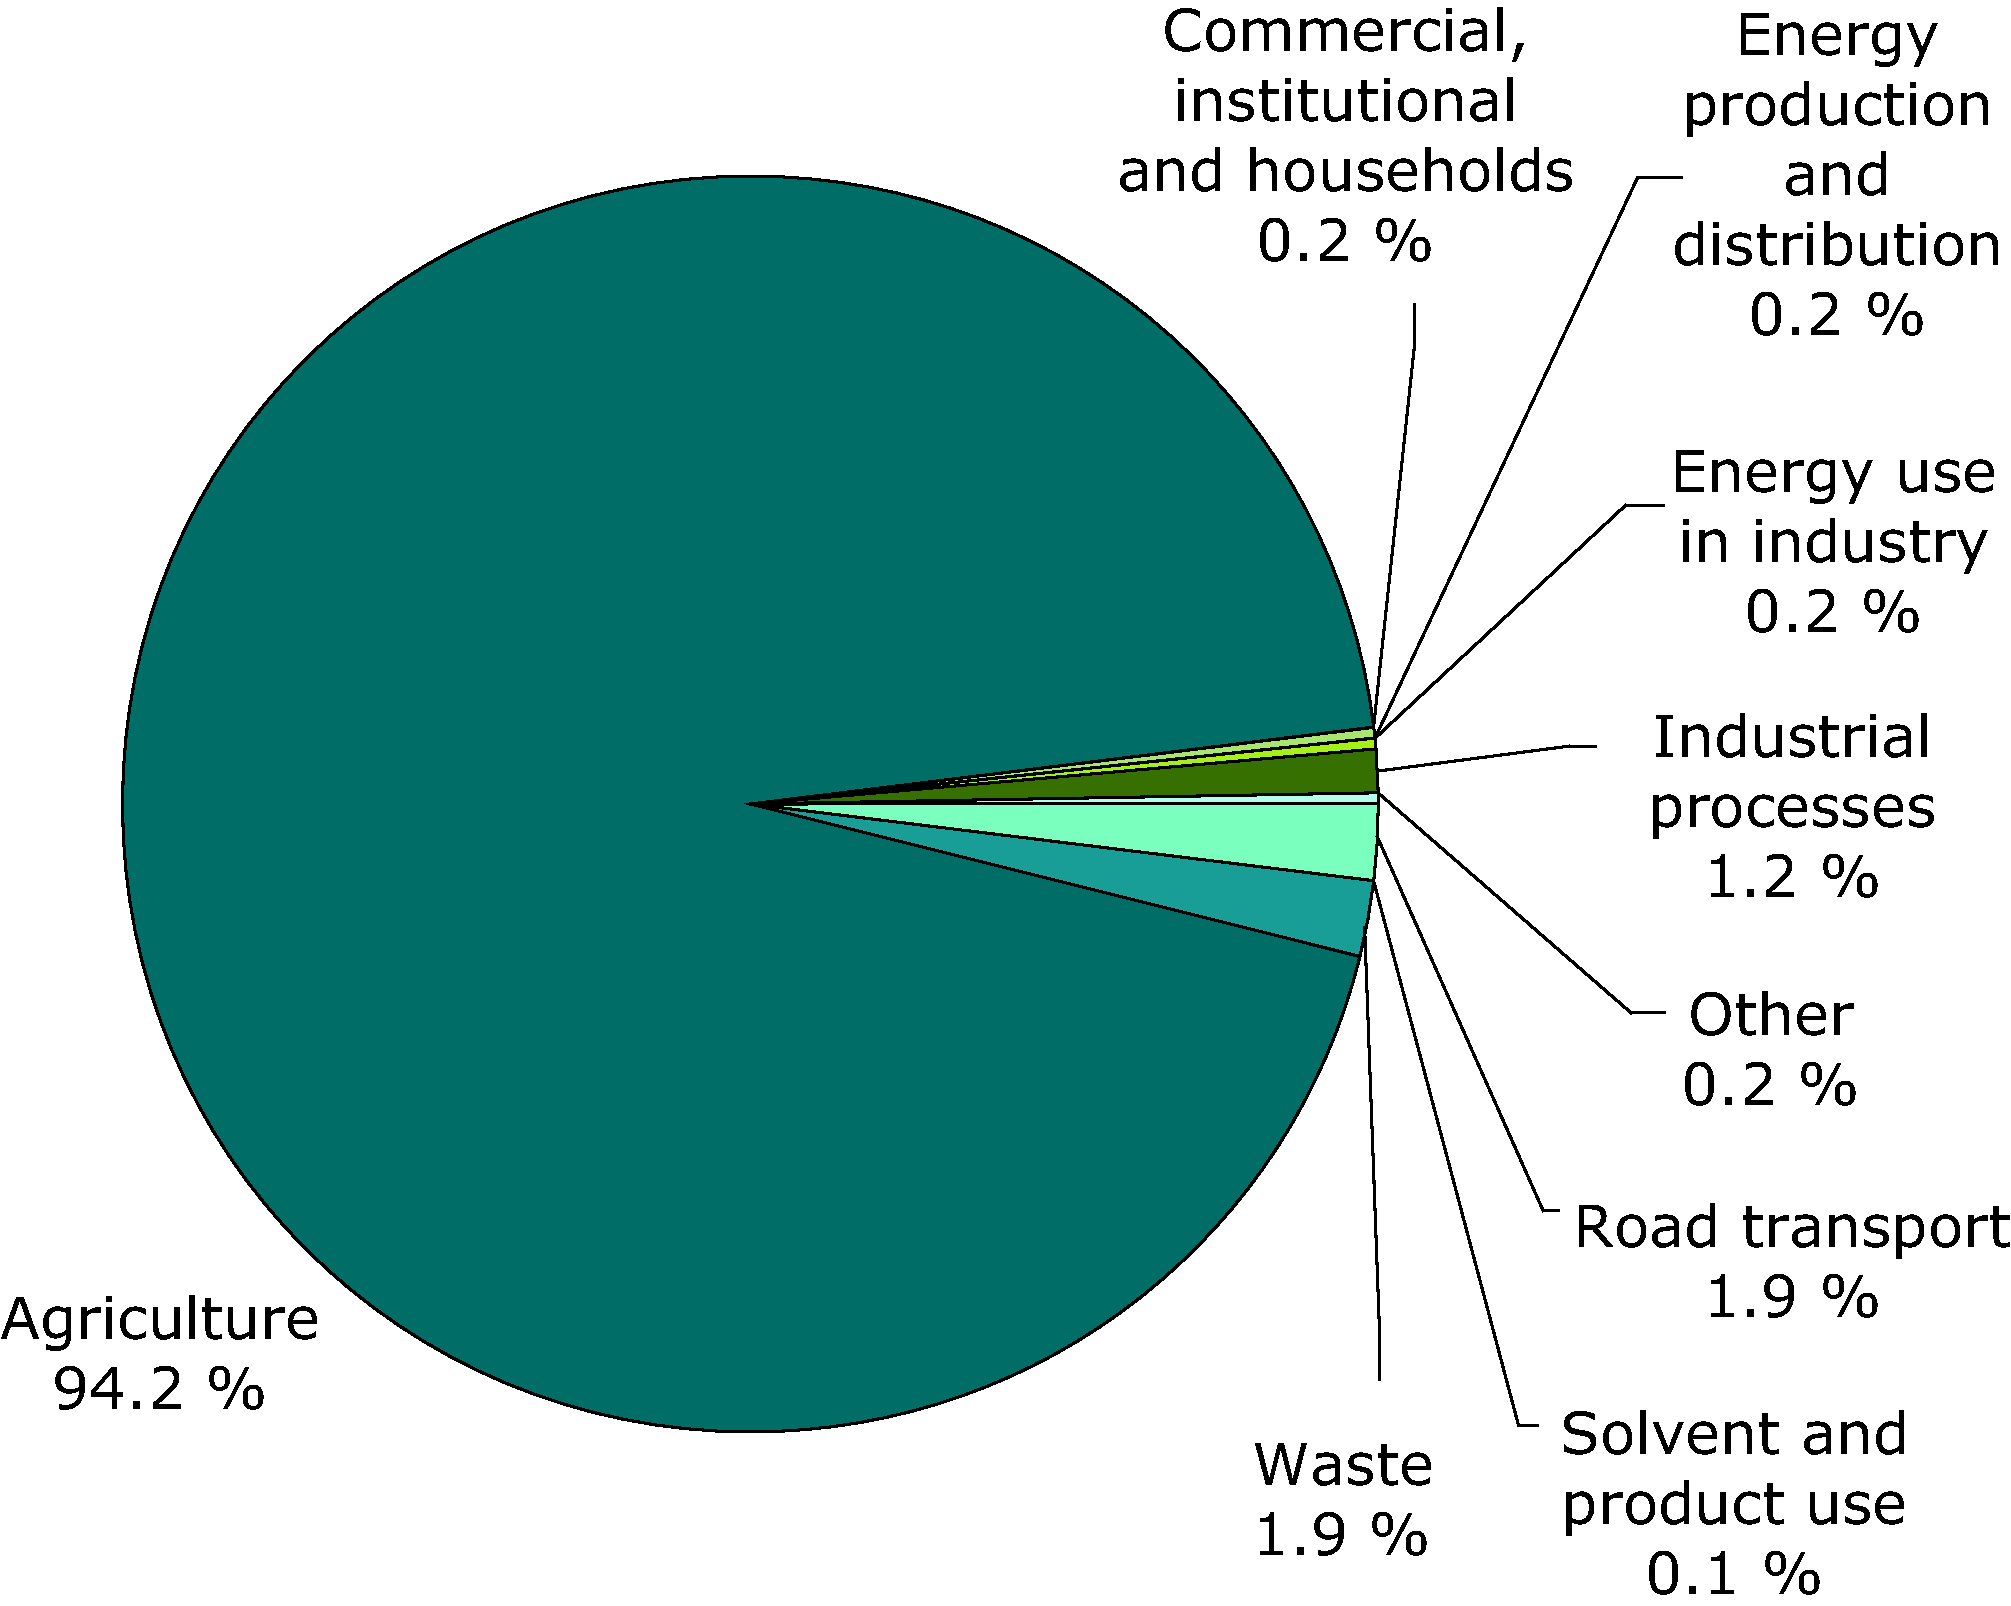 Emissions by sector of ammonia - 2008 (EEA member countries)